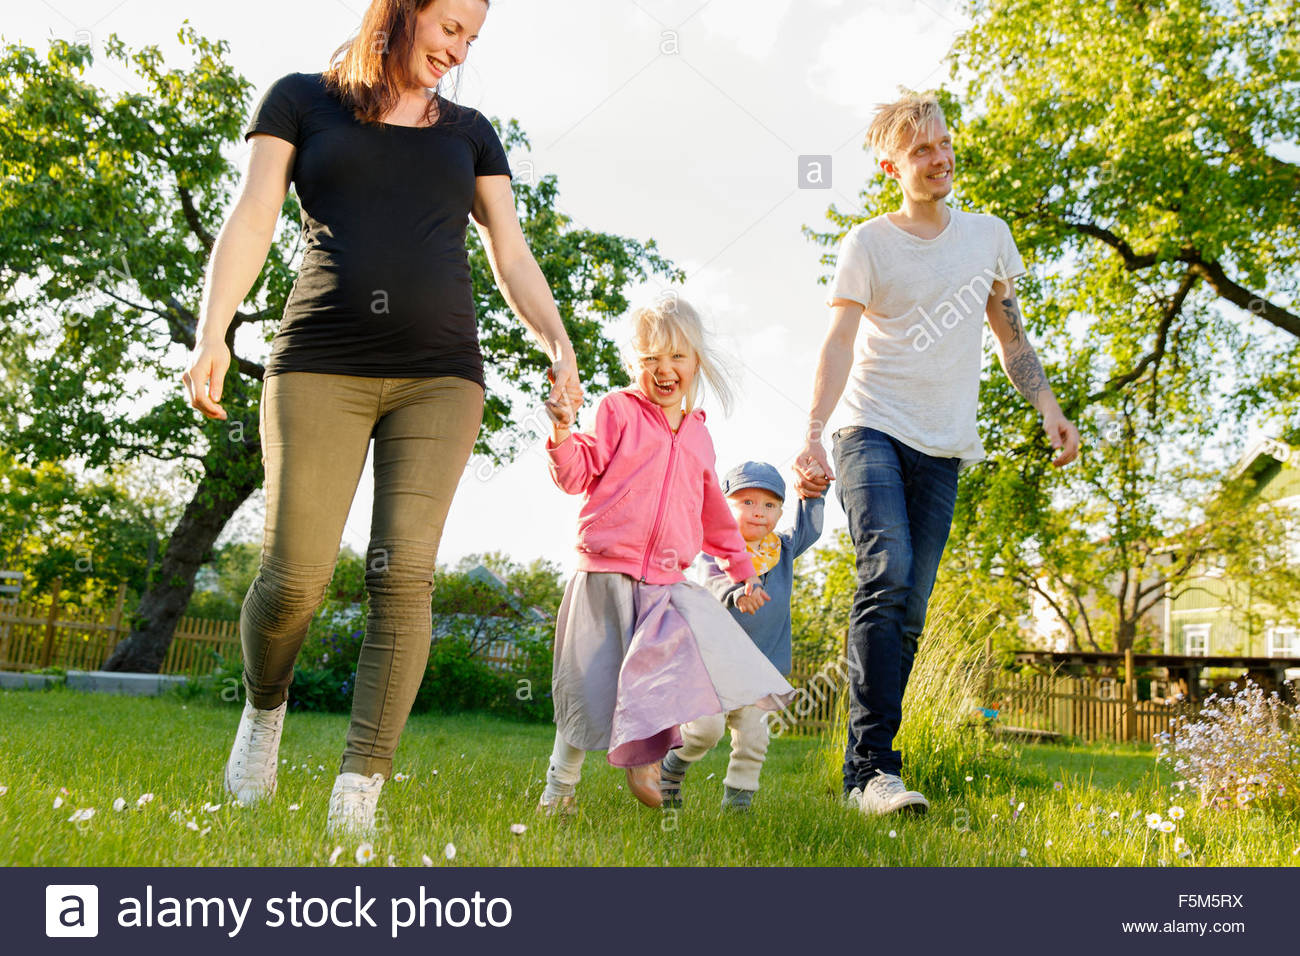 Sweden, Sodermanland, Jarna, Family with two children (12-17 months, 4-5) in garden Stock Photo